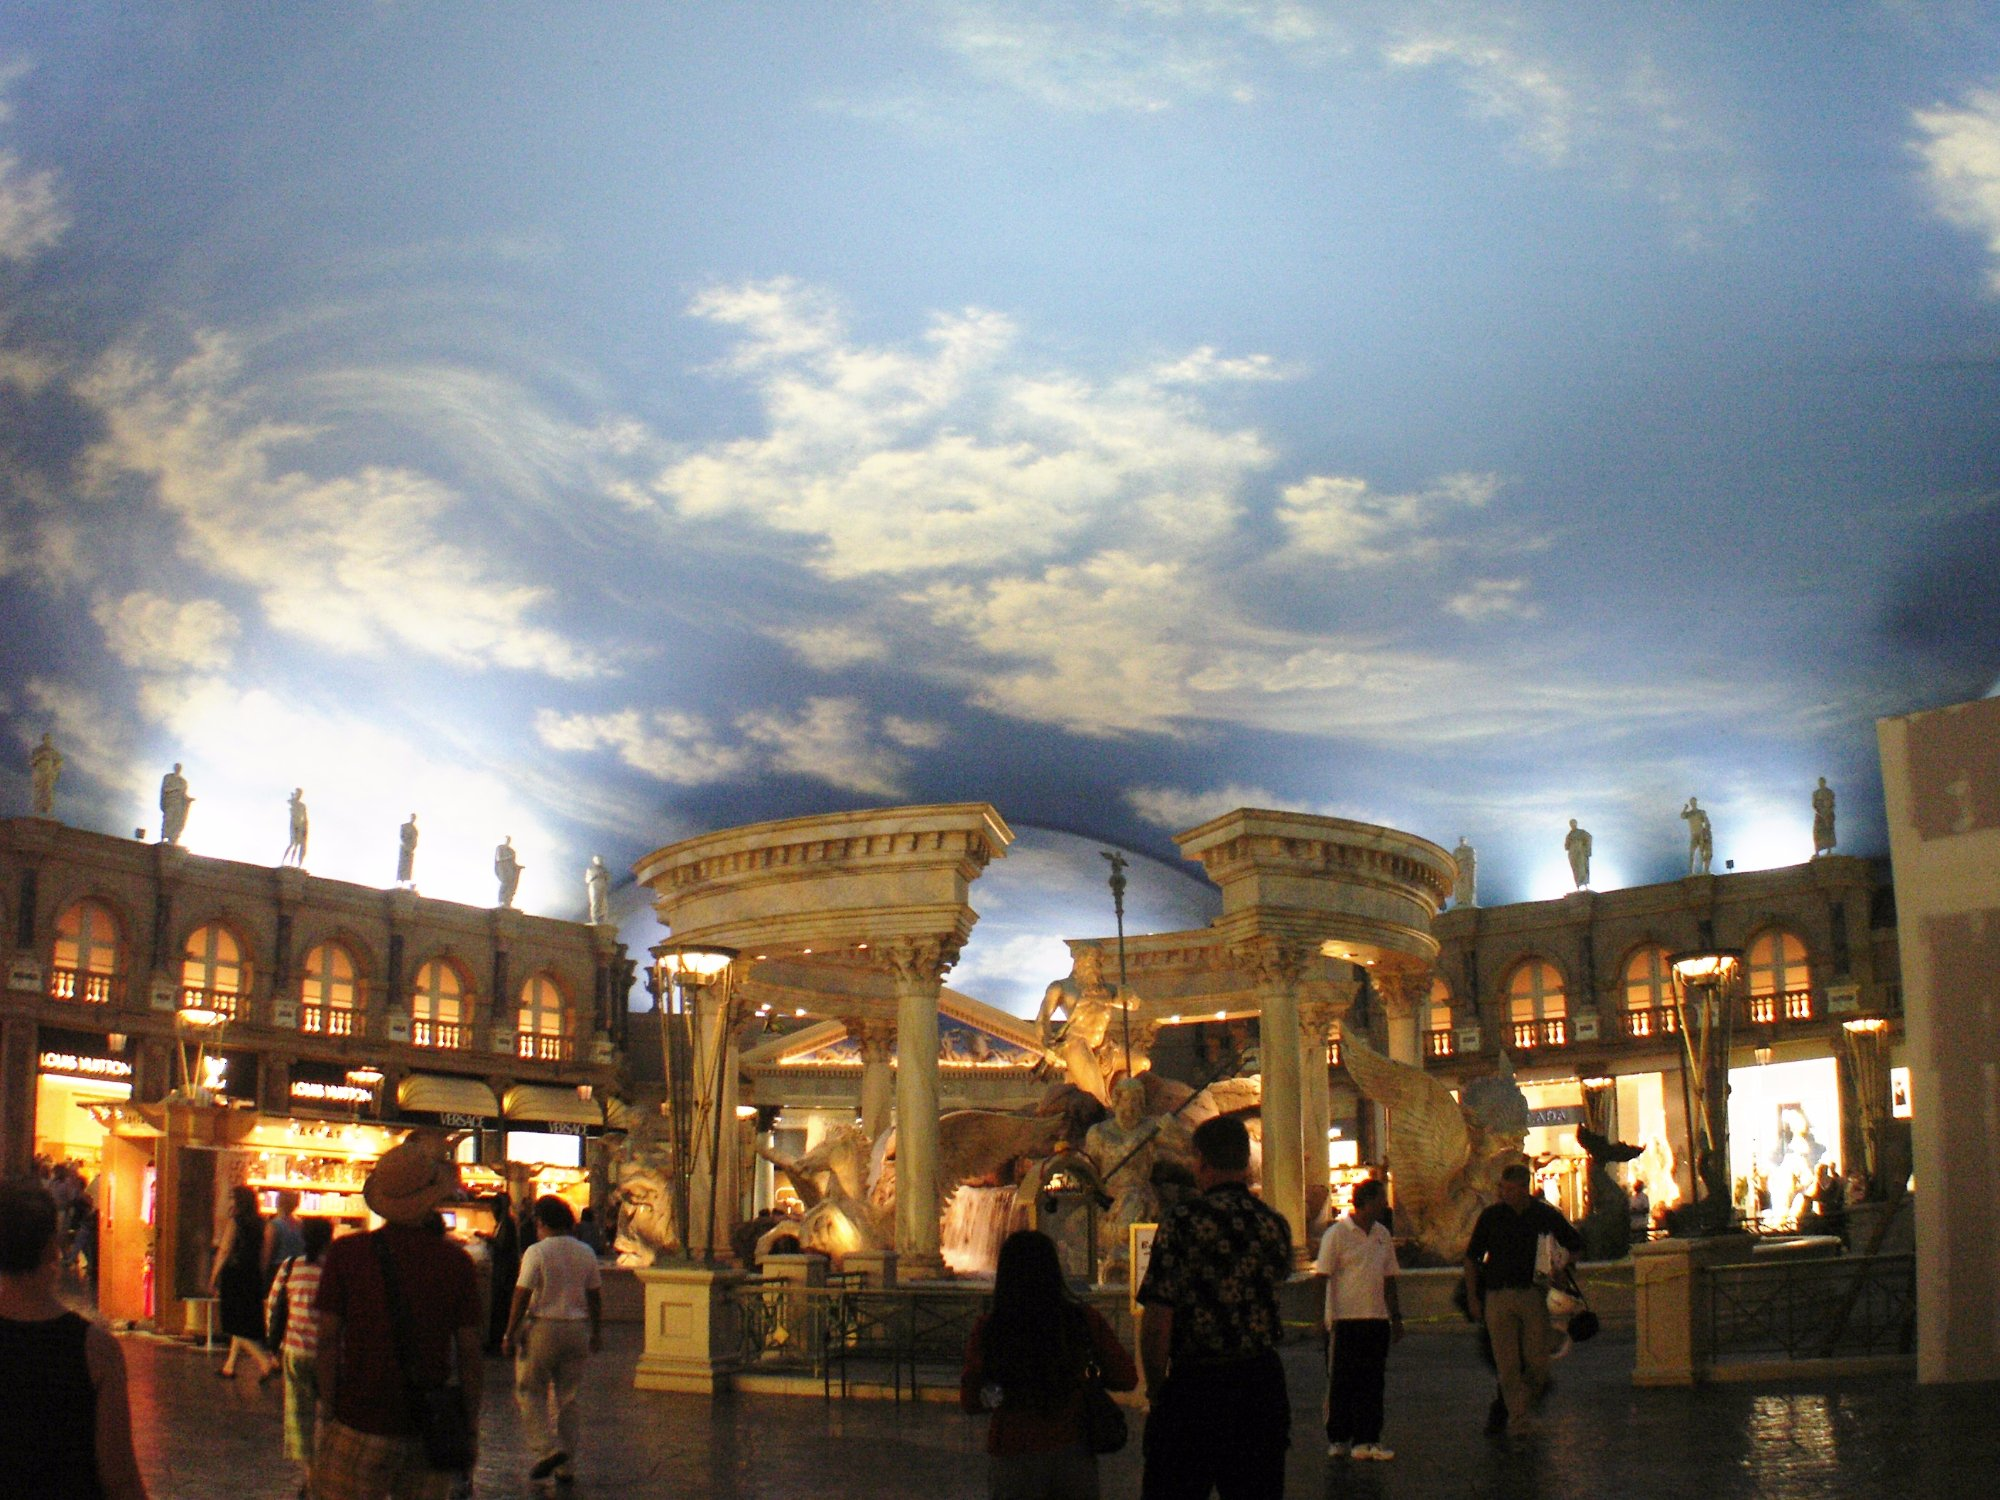 A View inside Caesars Palace